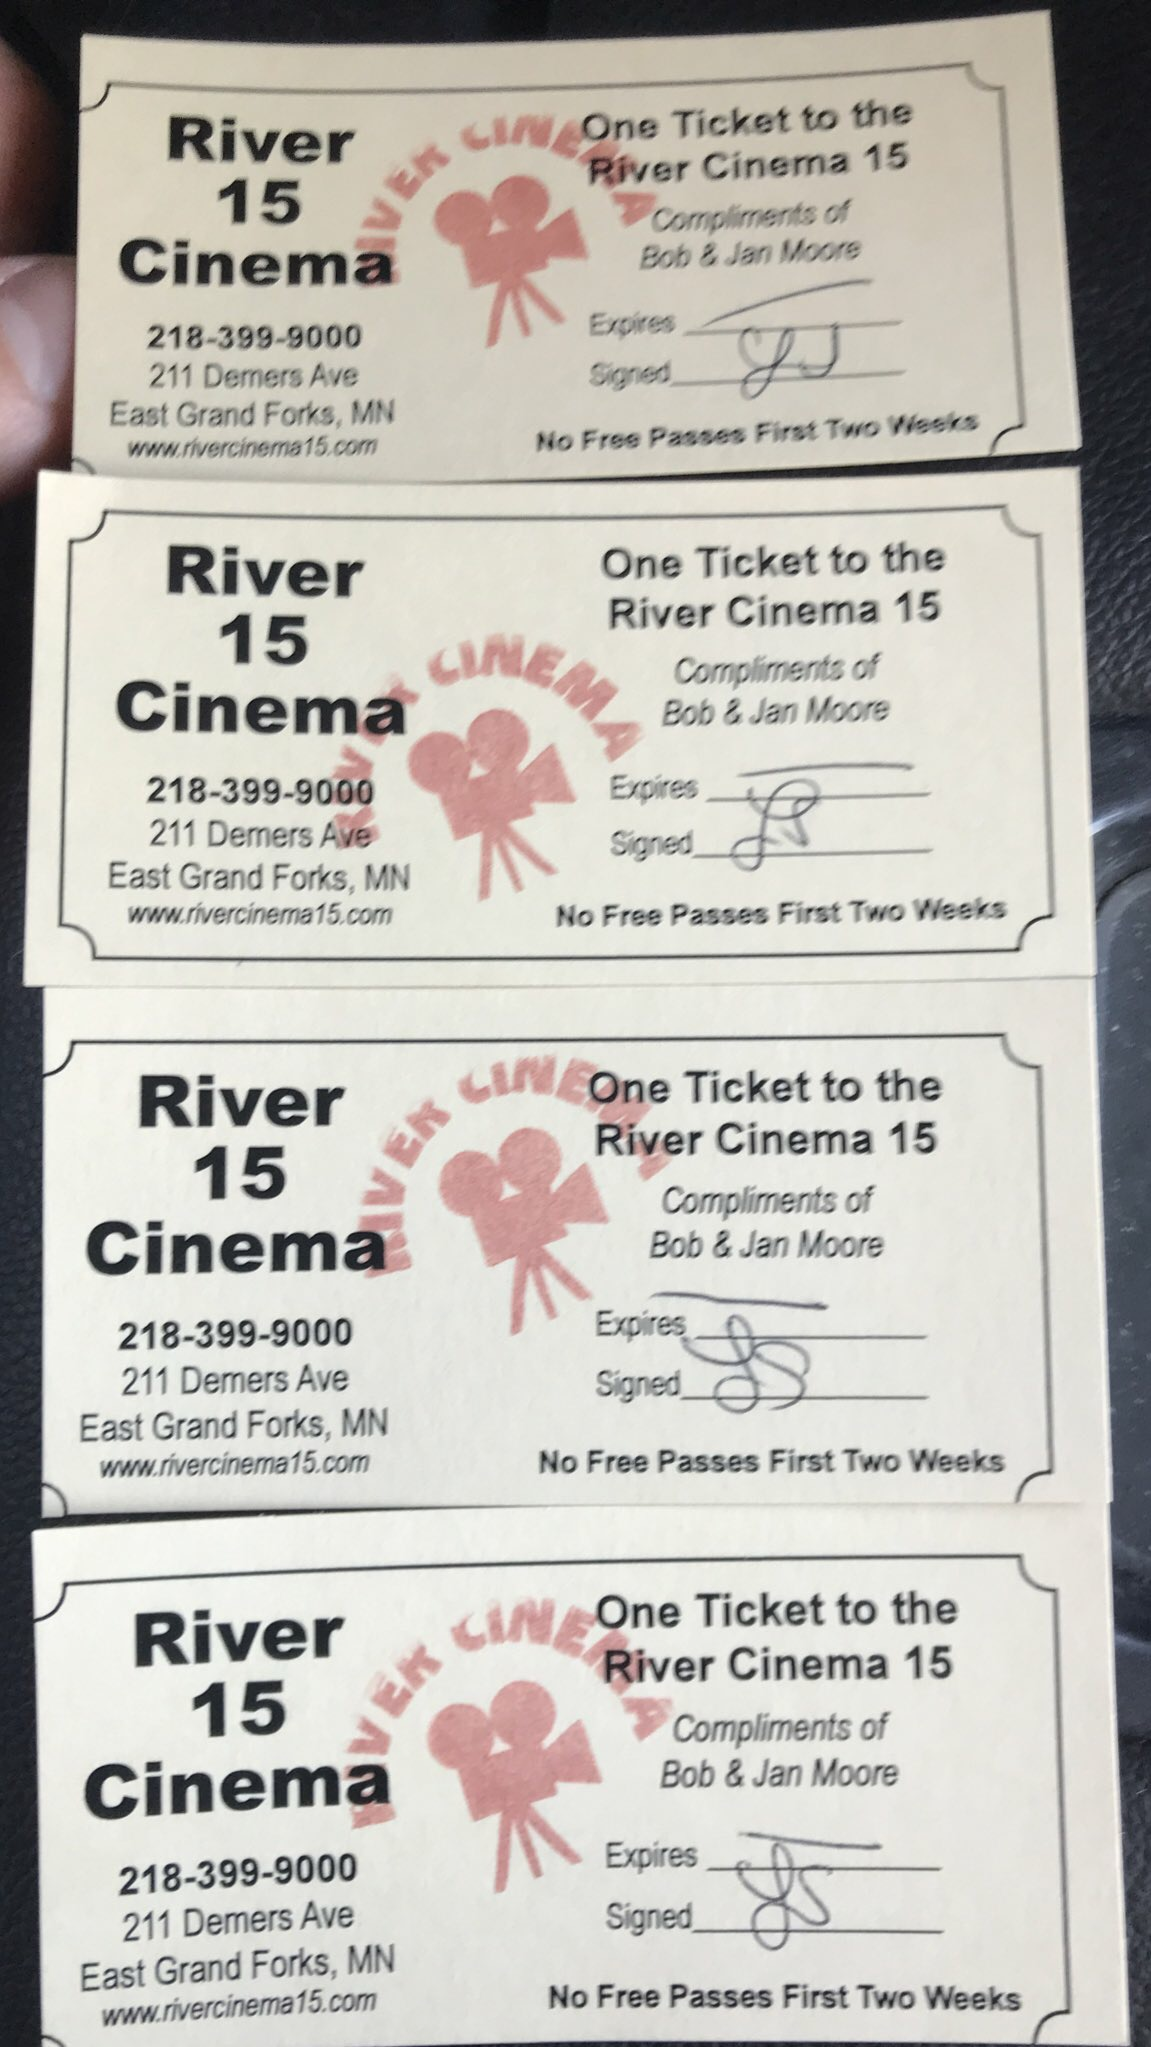 River Cinema 15 Movie Passes